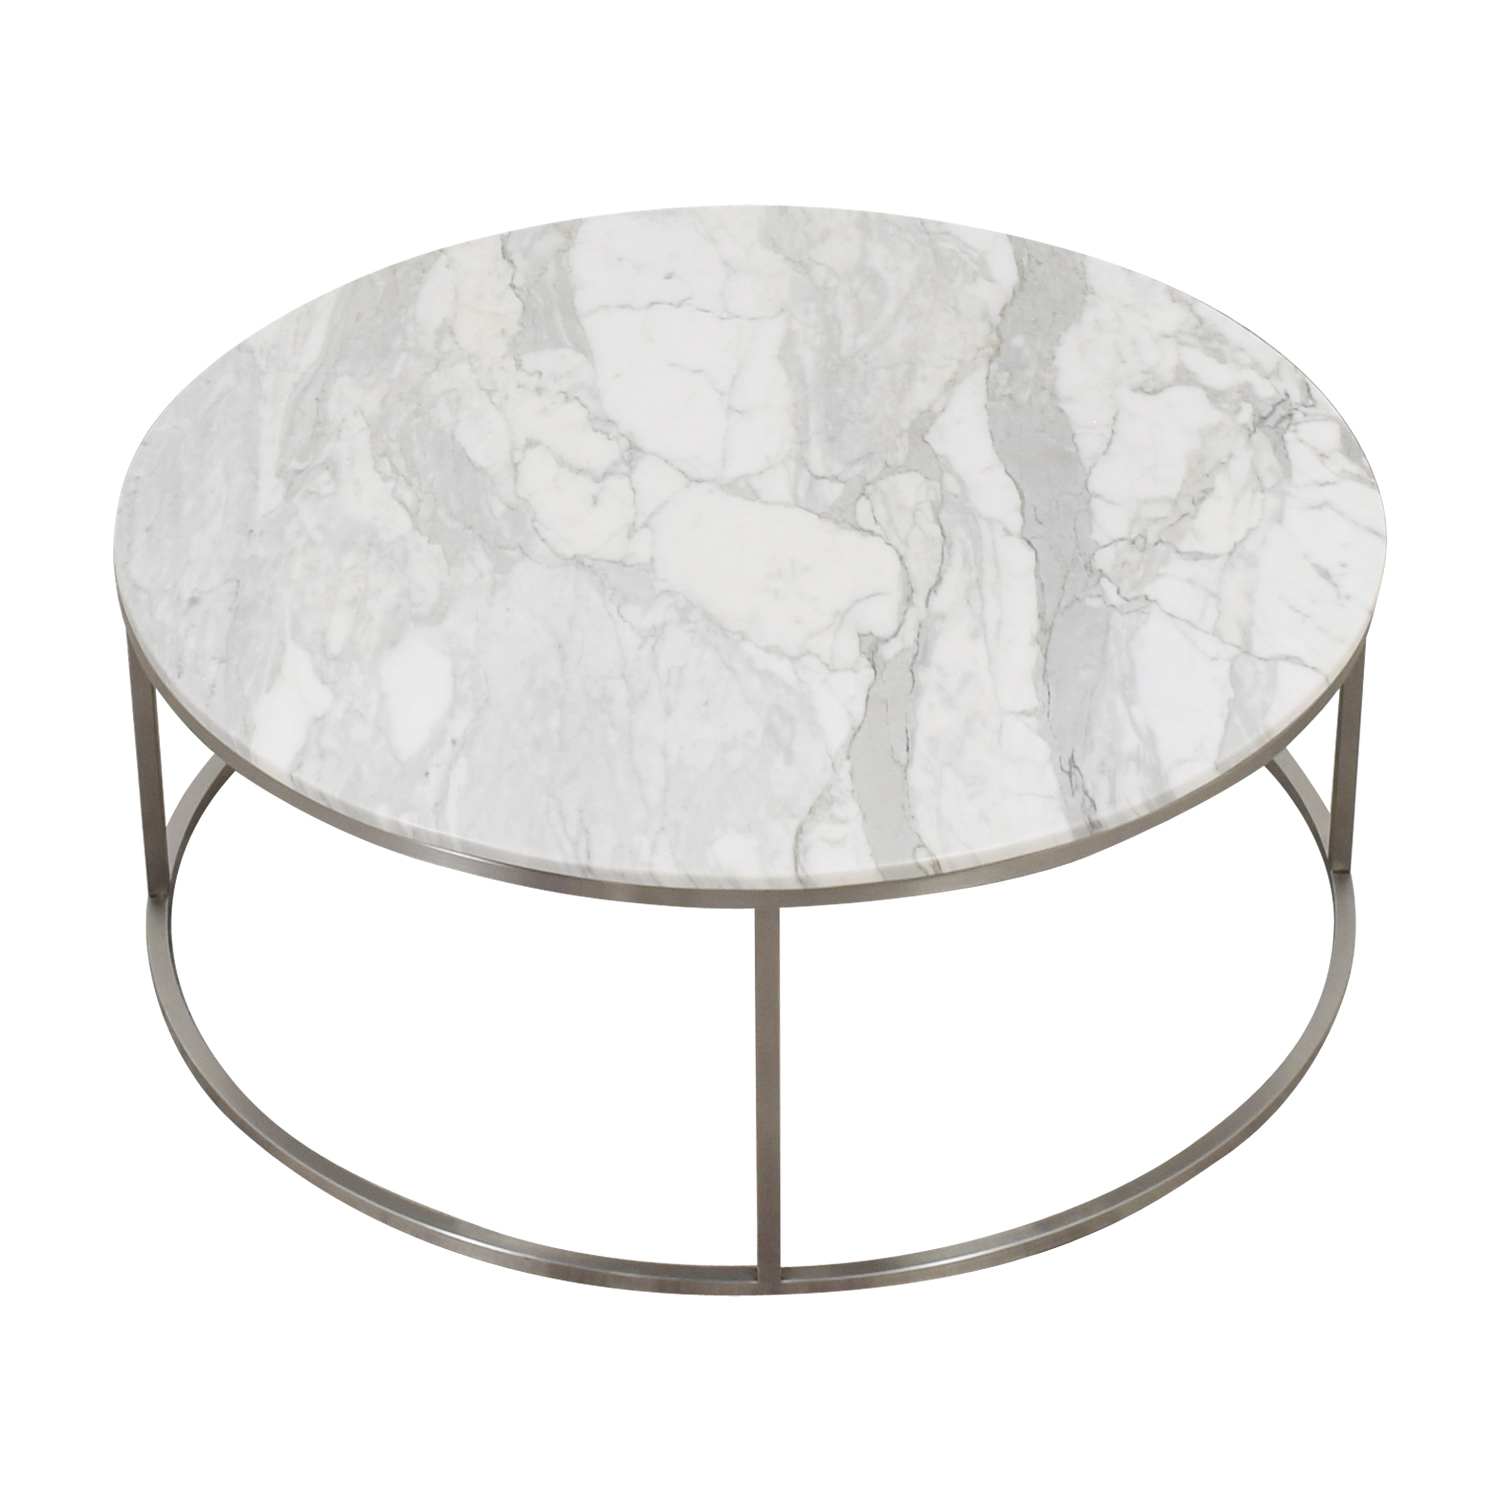 Design Within Reach Marble Round Coffee Table Design Within Reach